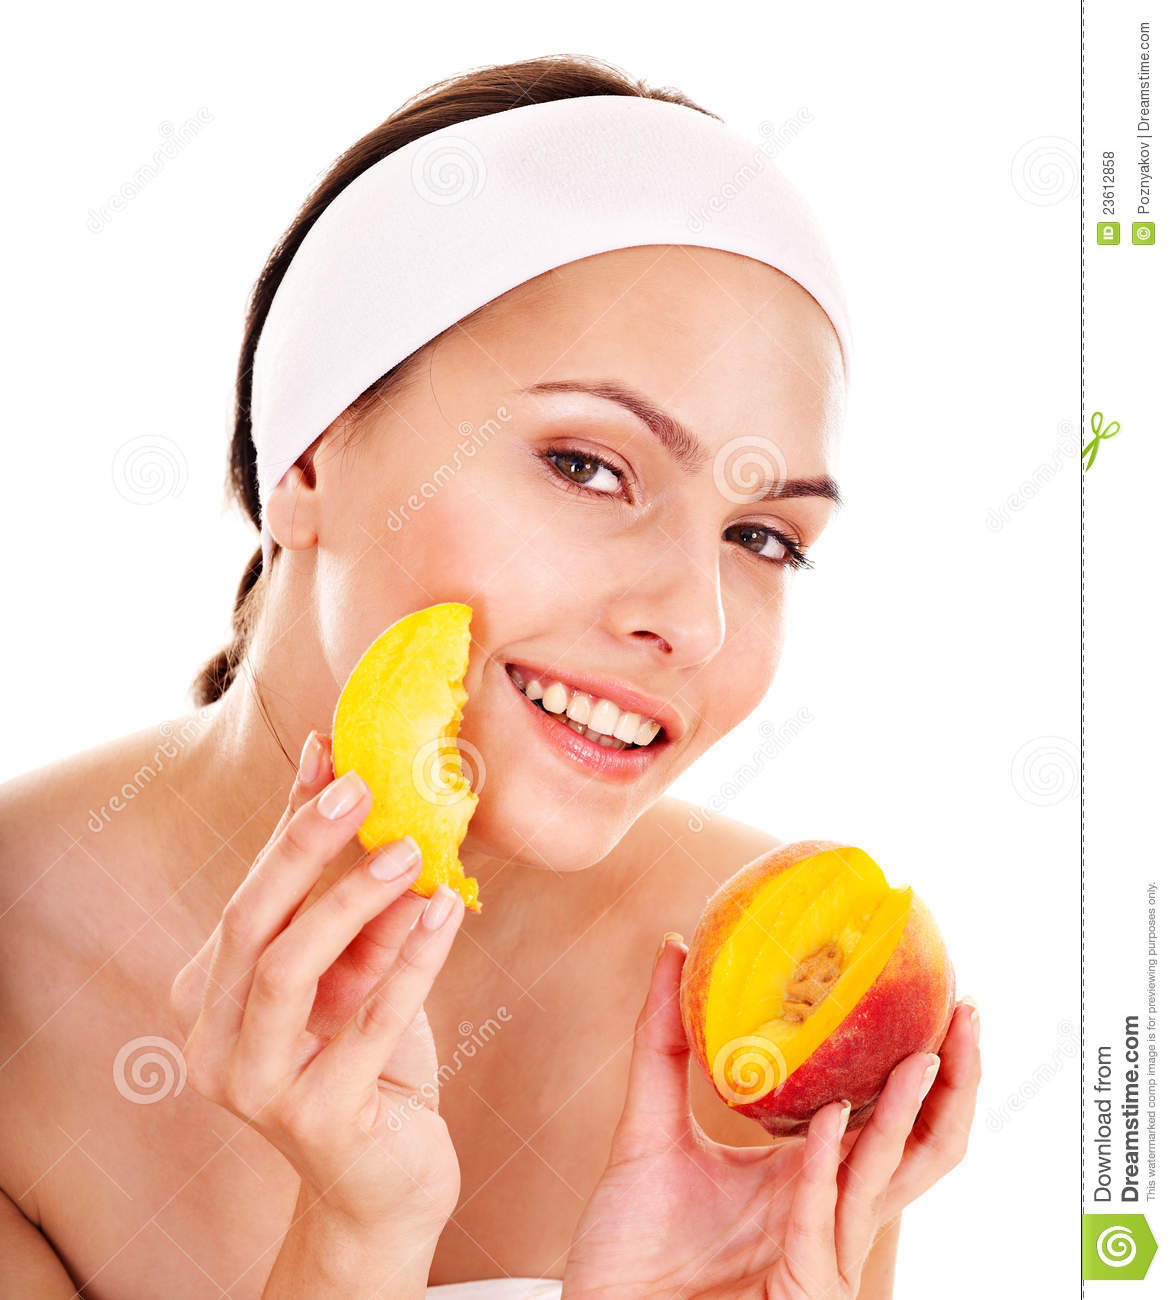 Phrase Facial fruit mask